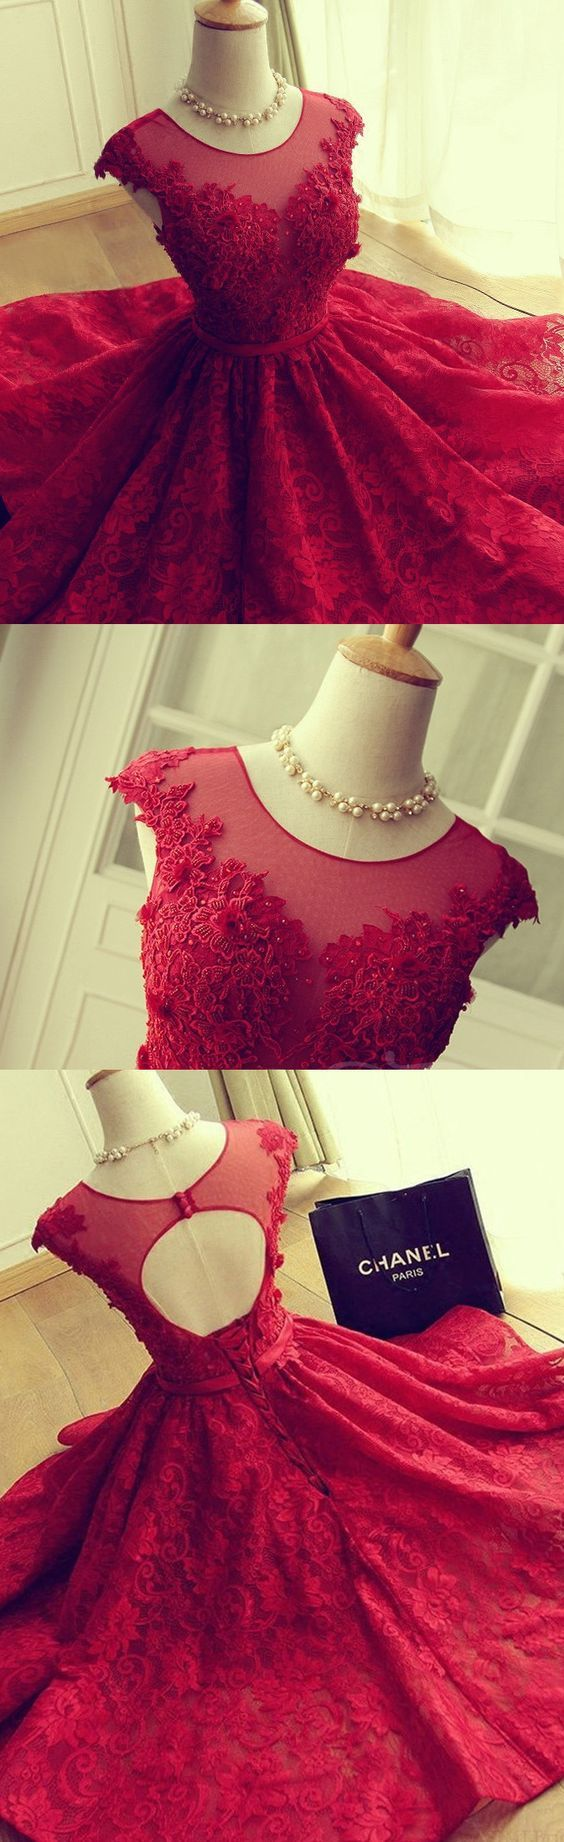 Red party dresses short prom dresses homecoming dress lace red